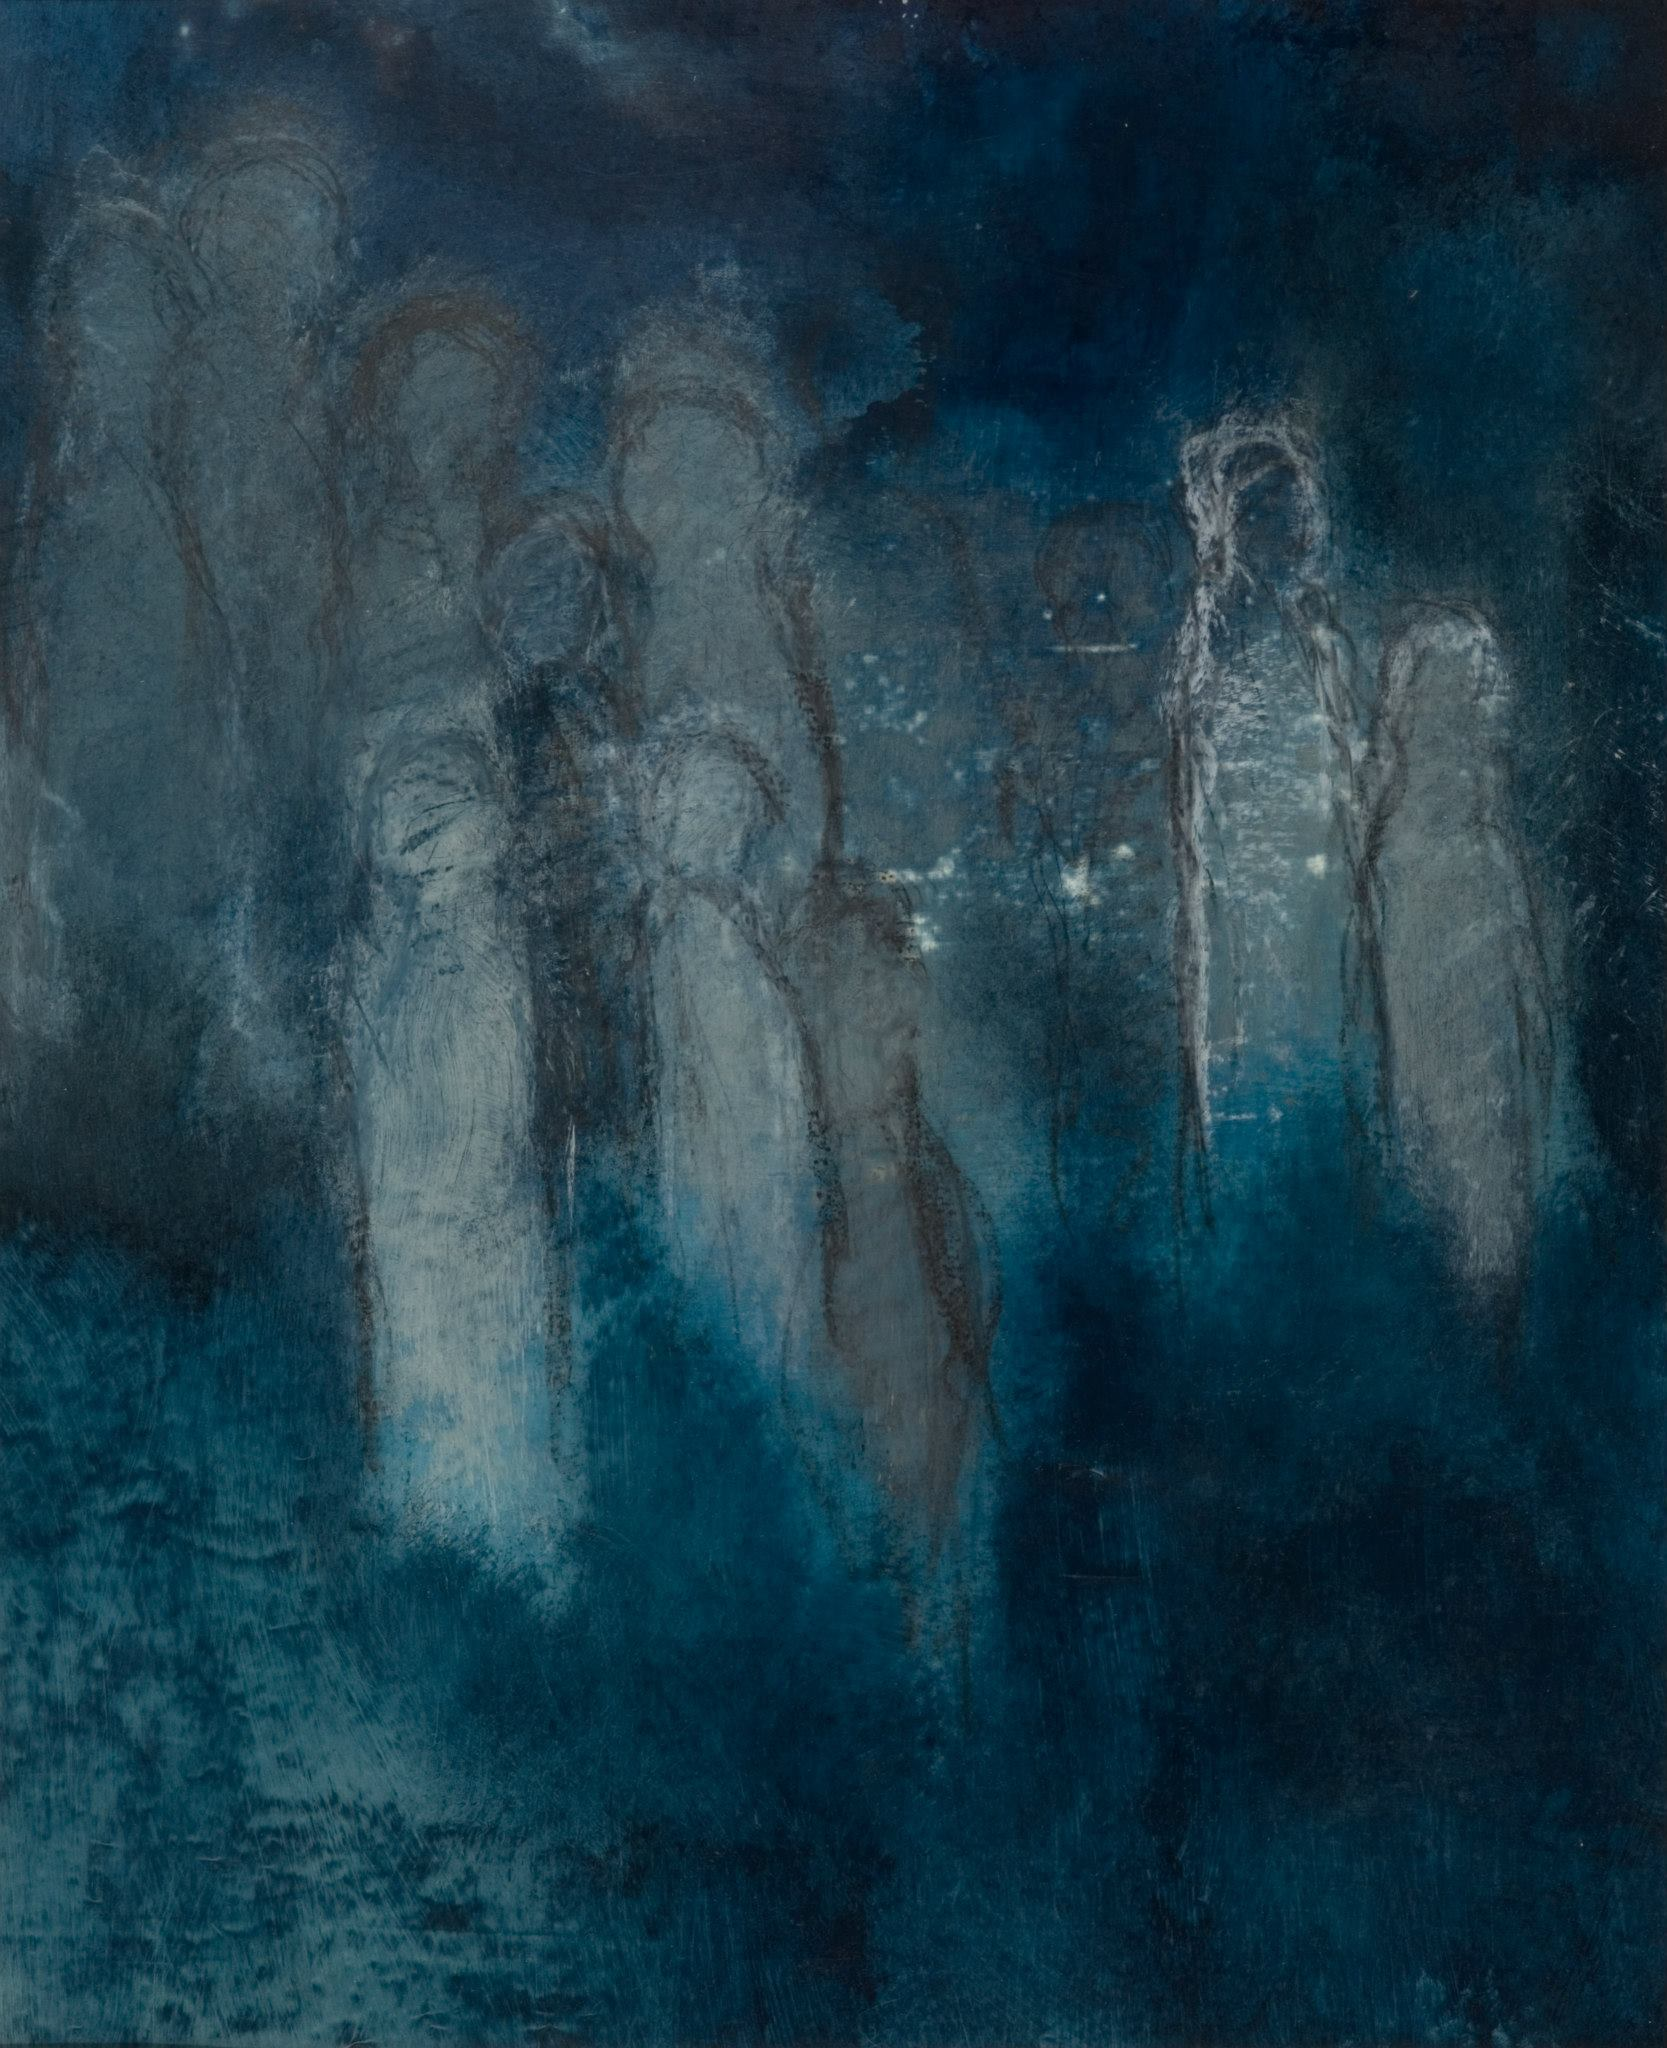 Anne Slaughter's The Night Gathering